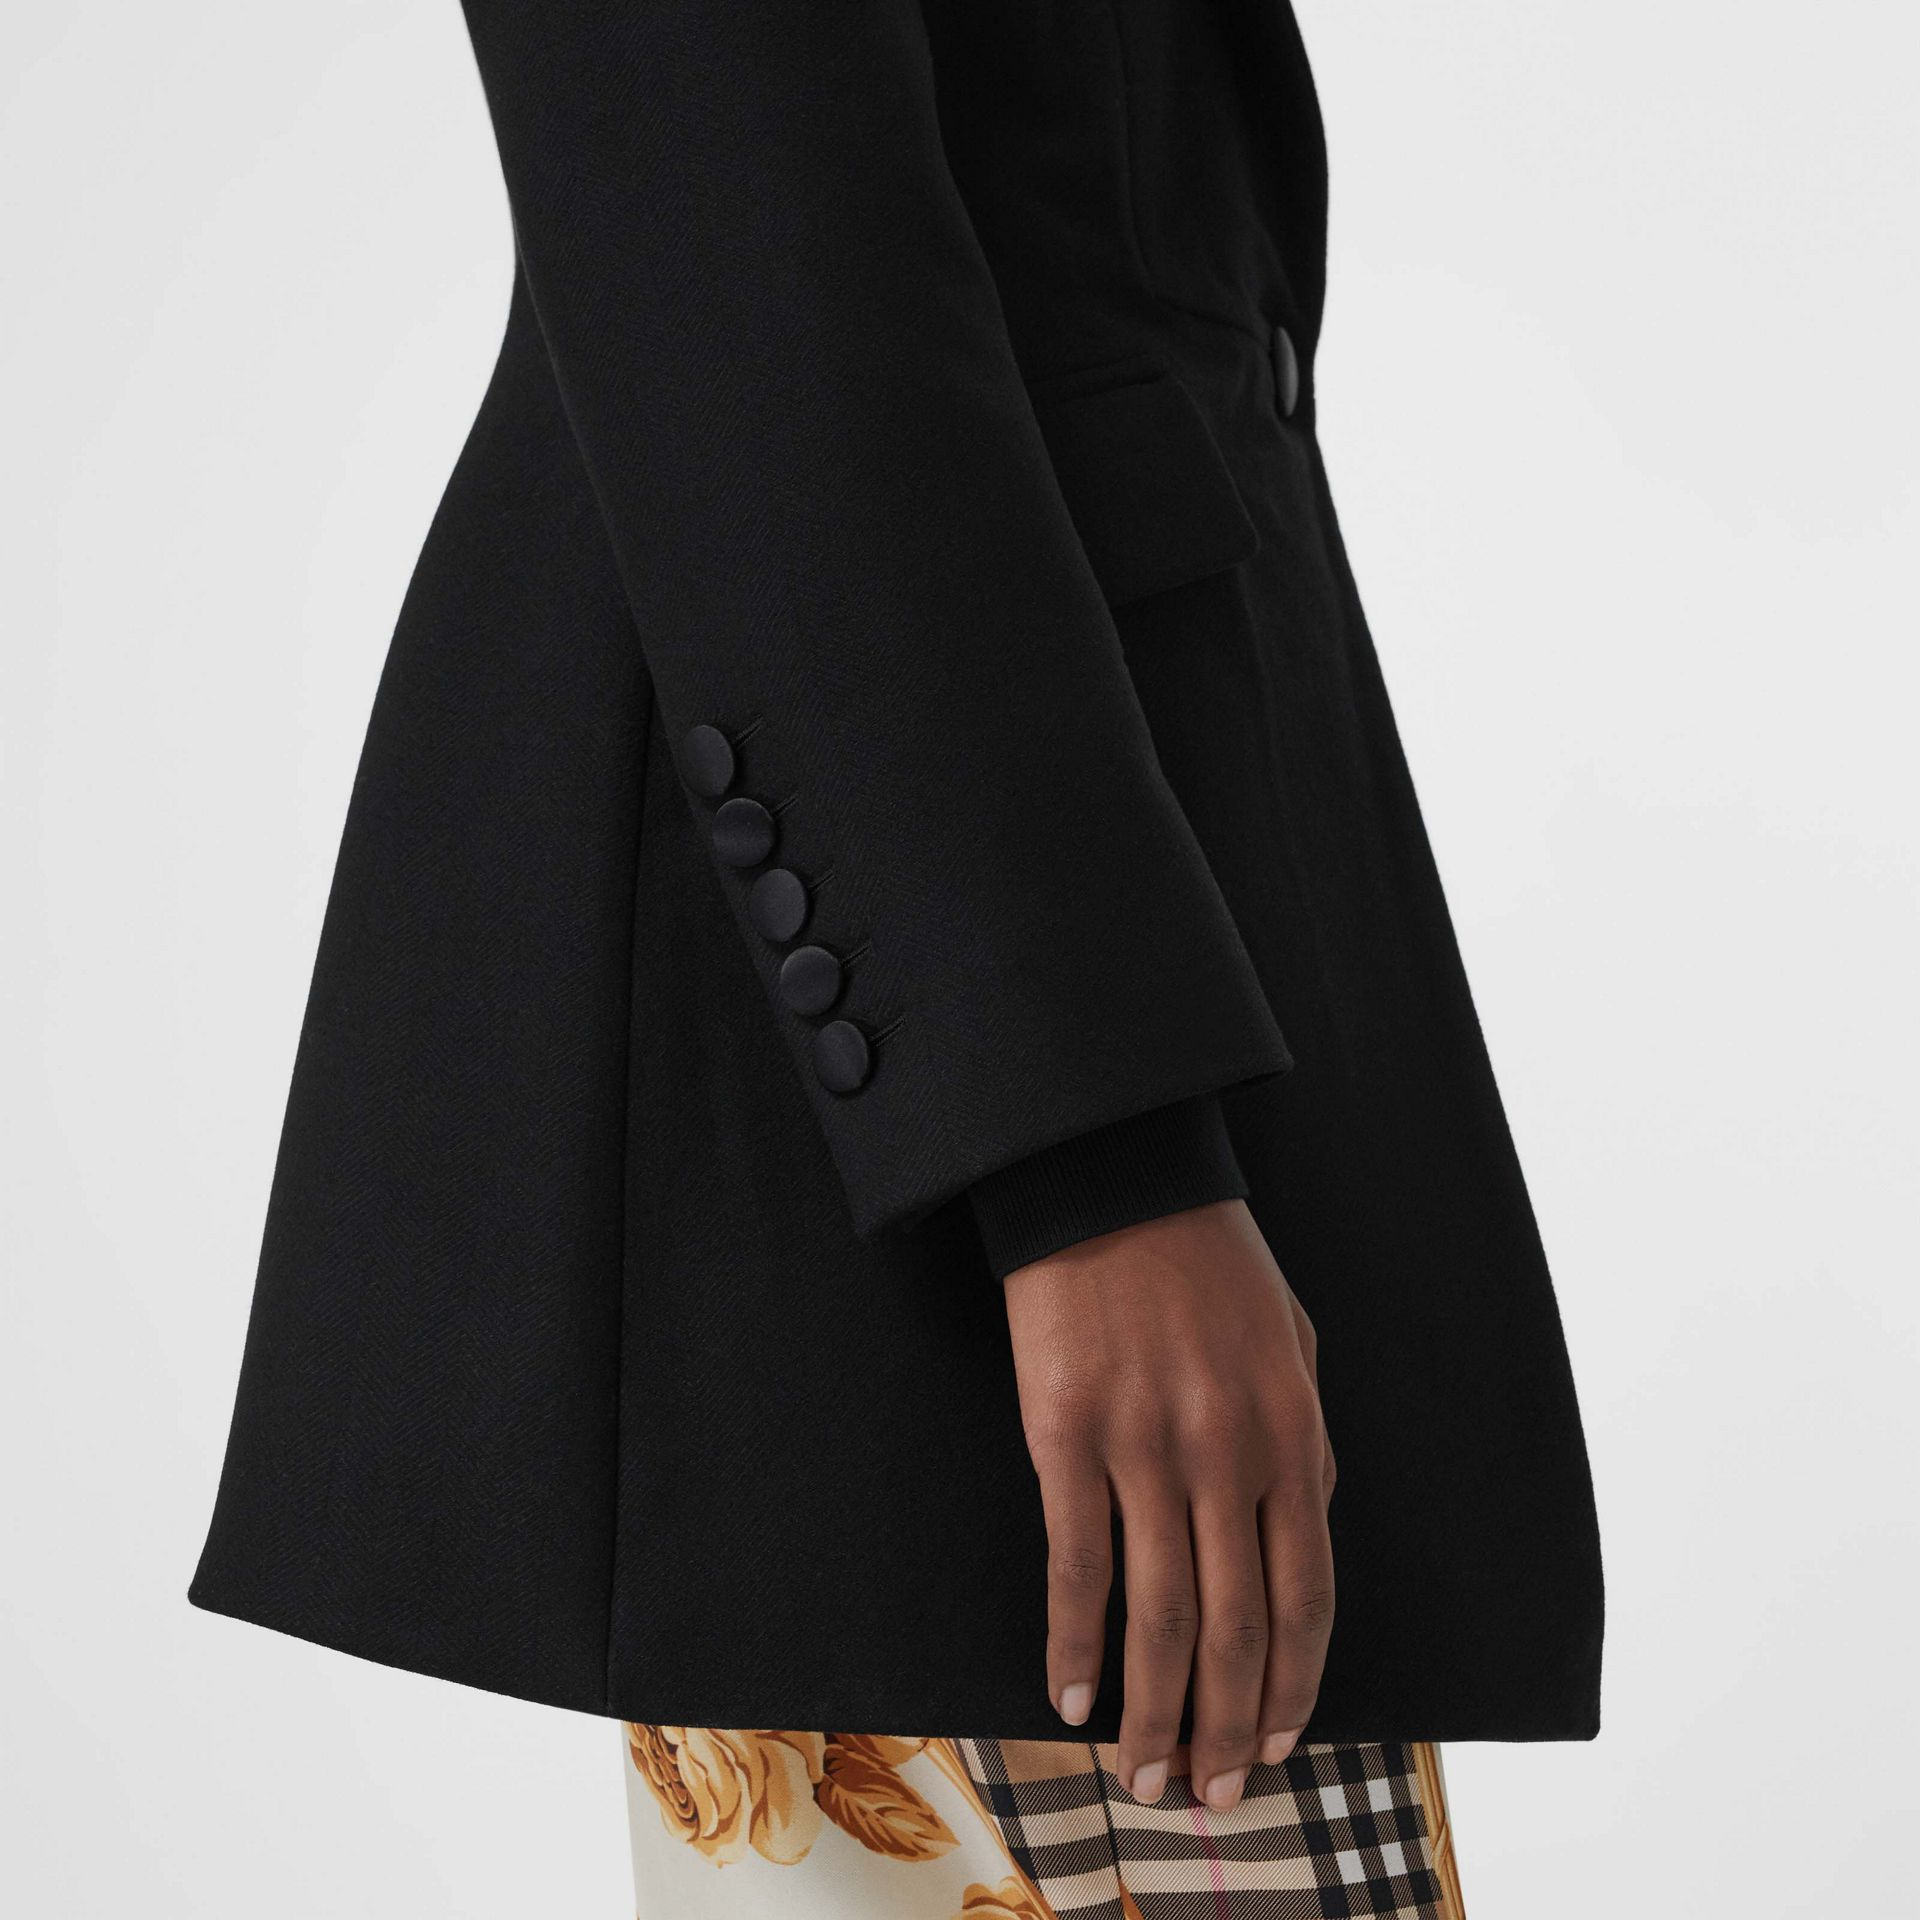 Herringbone Wool Cashmere Blend Tailored Jacket in Black - Women | Burberry United States - gallery image 1